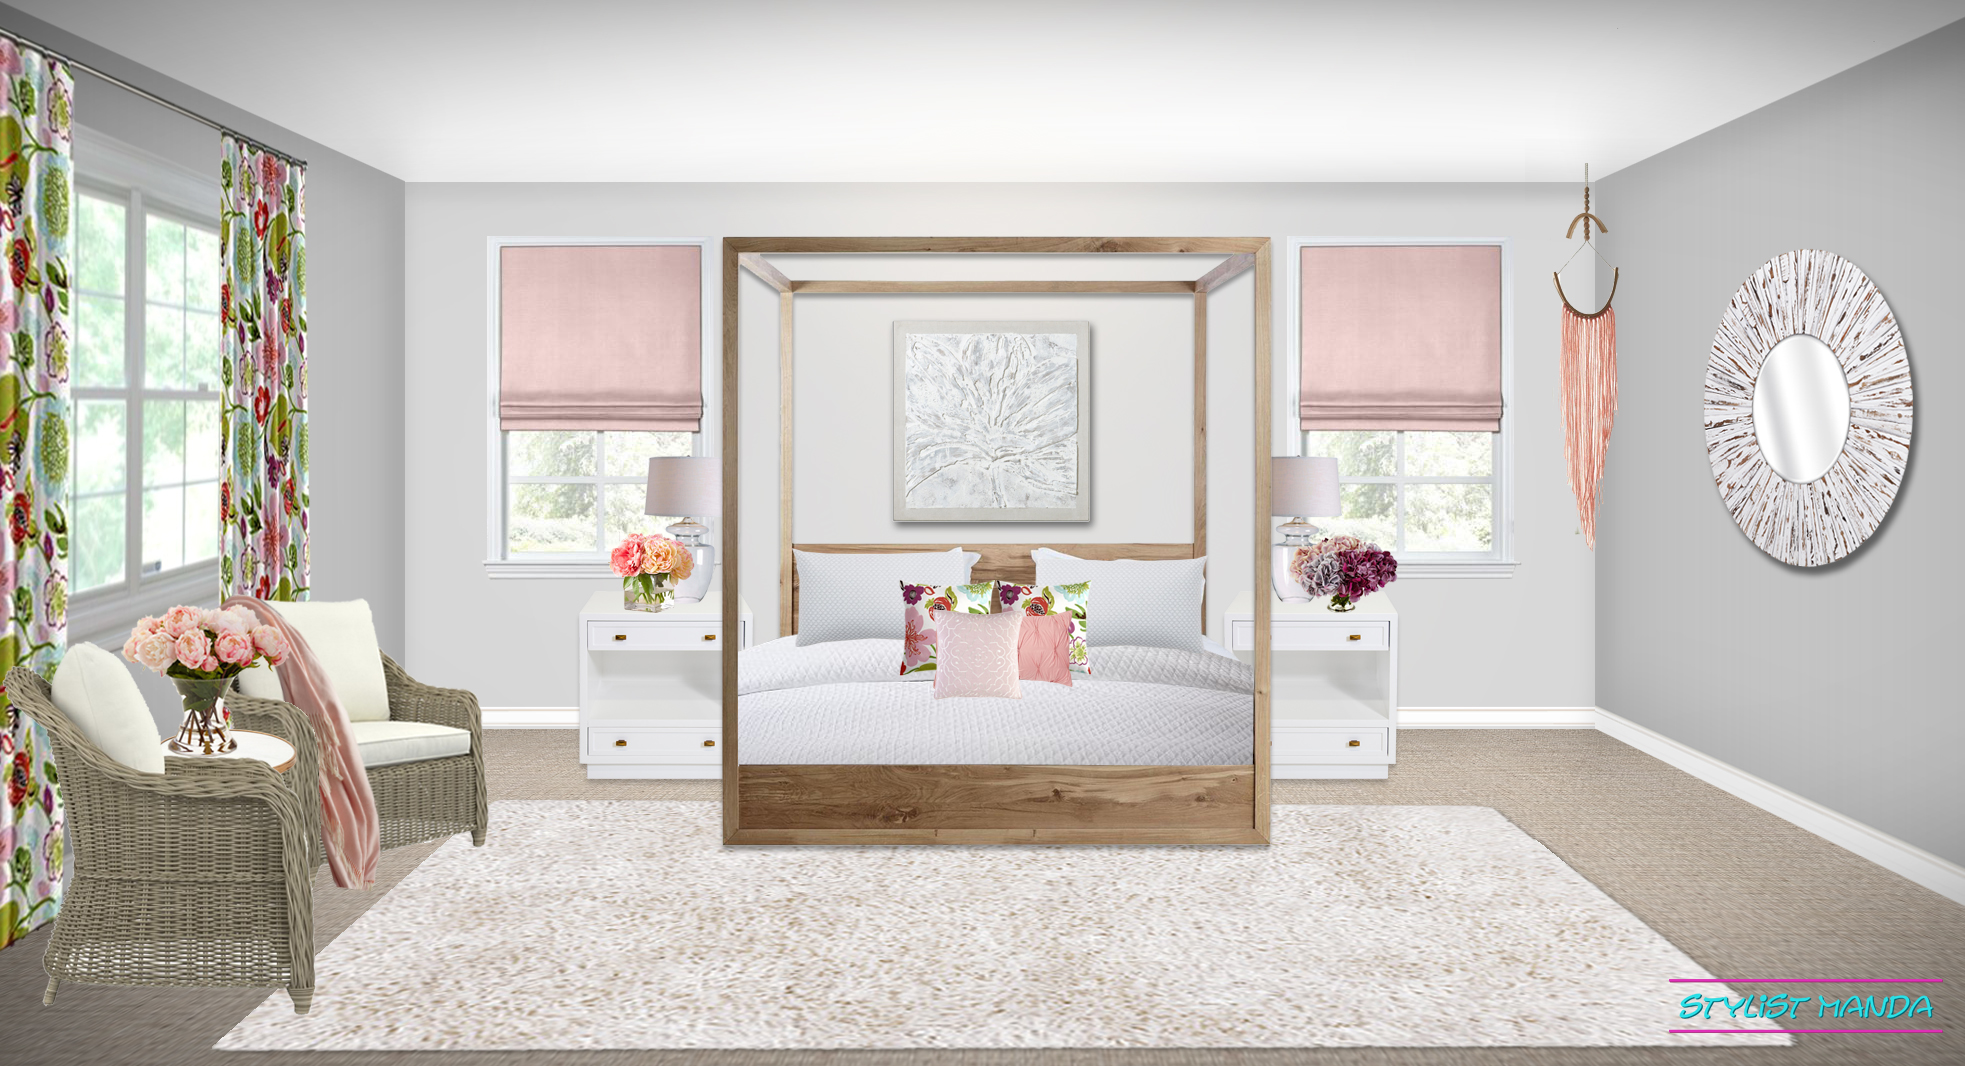 Flower Explosion in this spring update bedroom design featuring a poster bed, crisp white bedding, and floral accents.